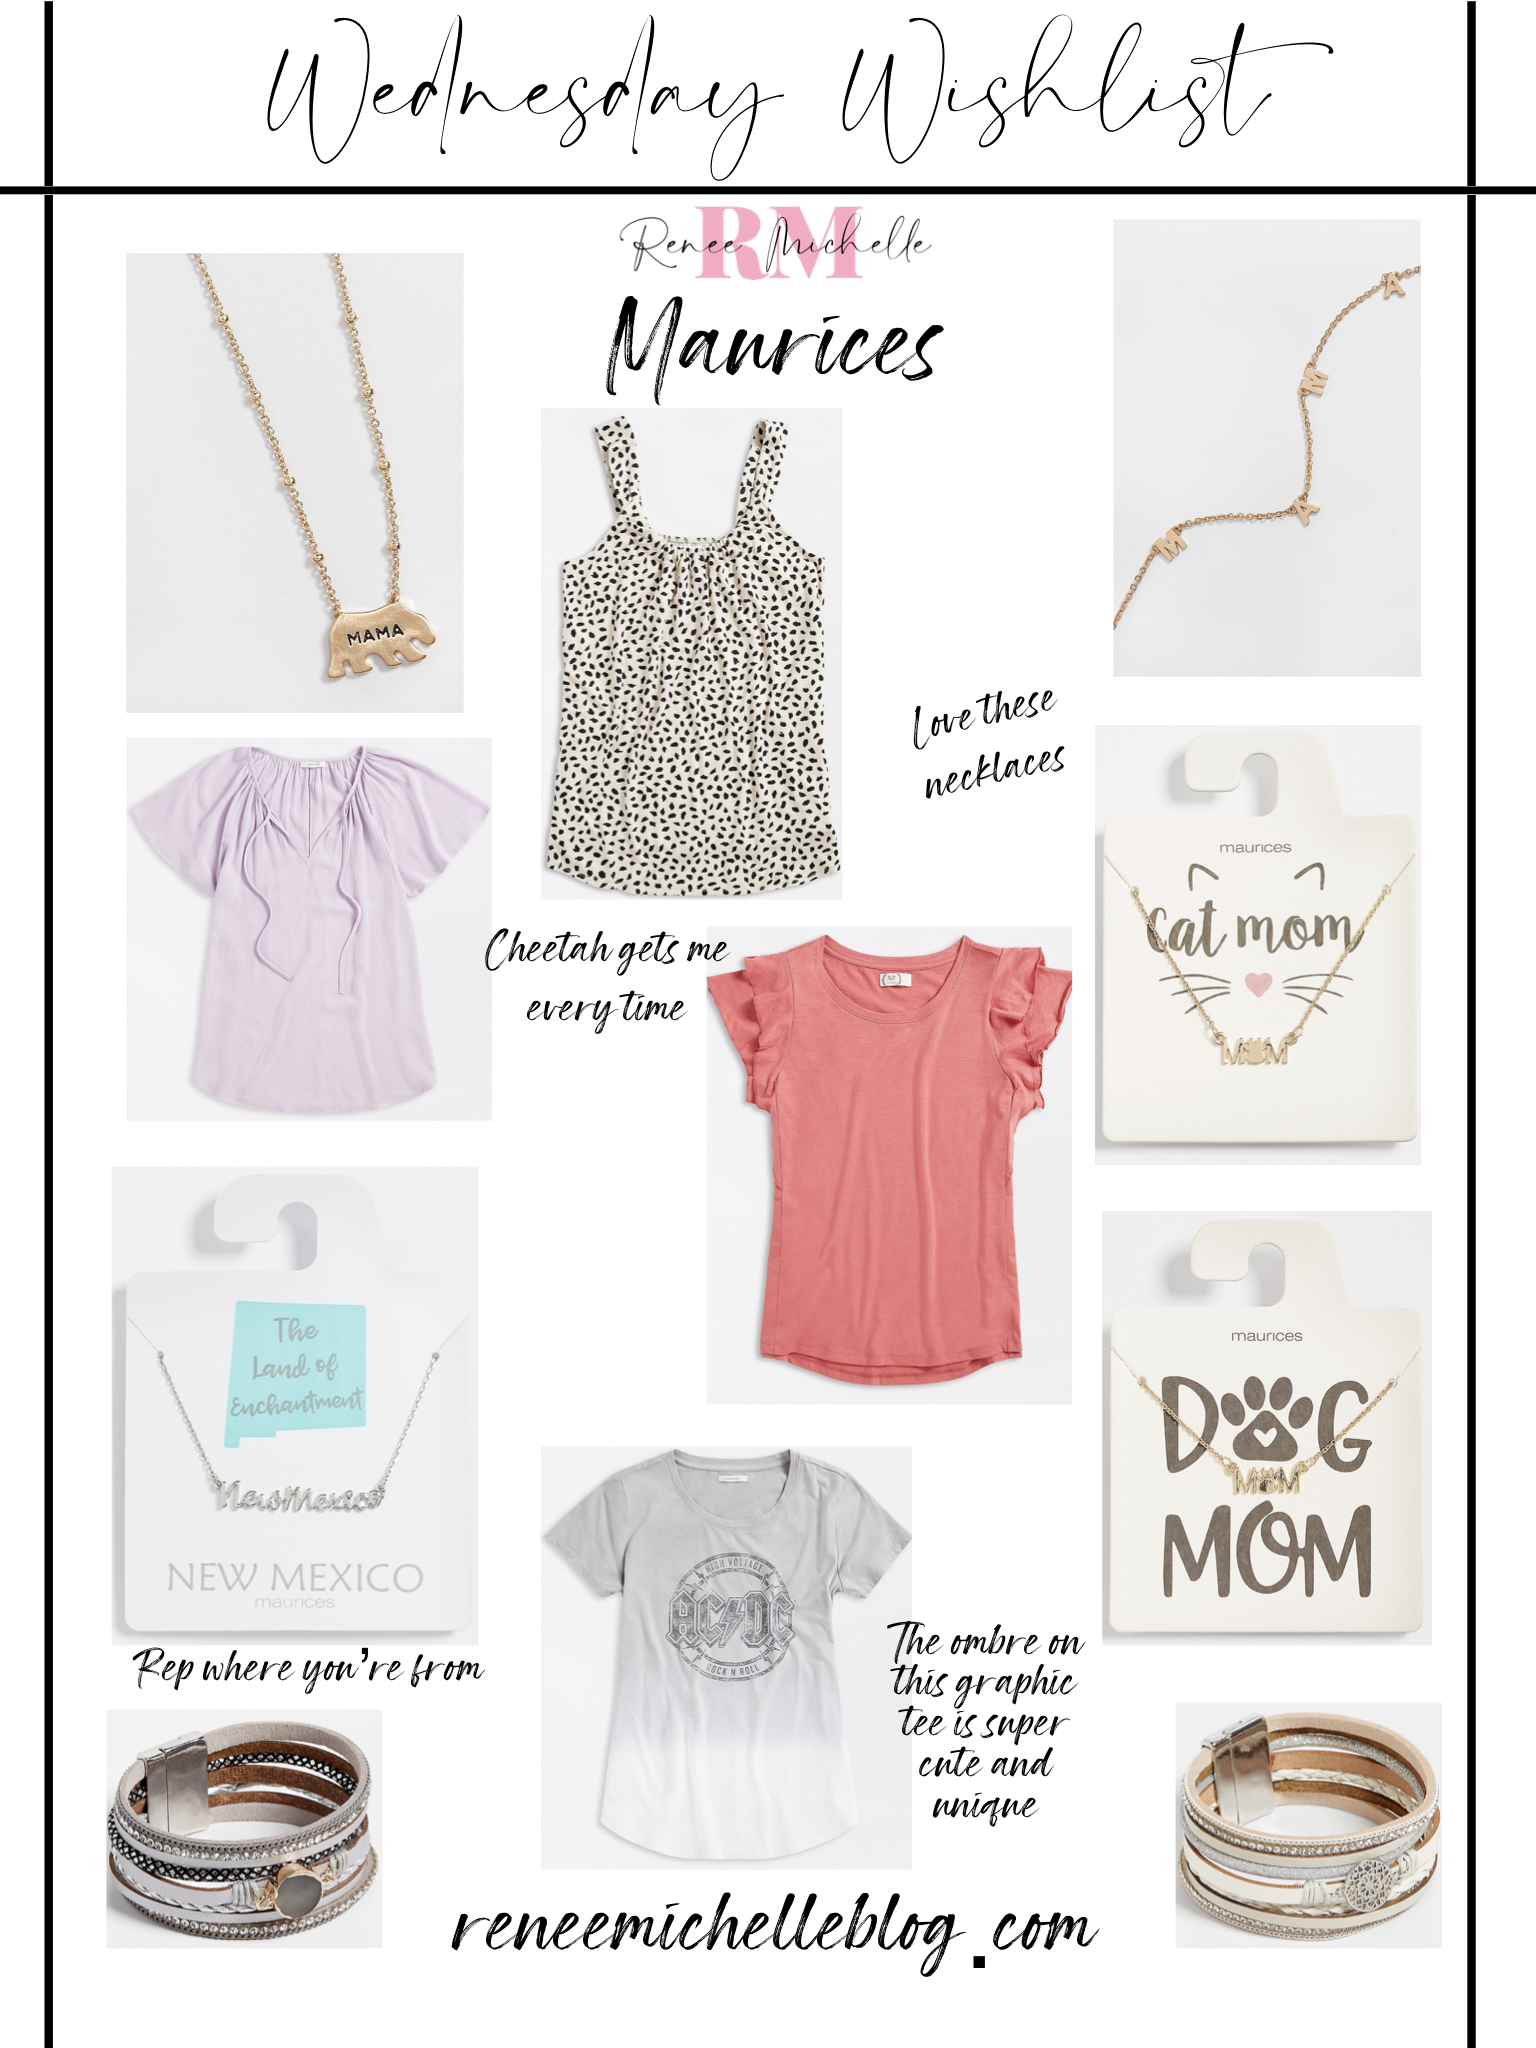 Wednesday Wishlist V.4